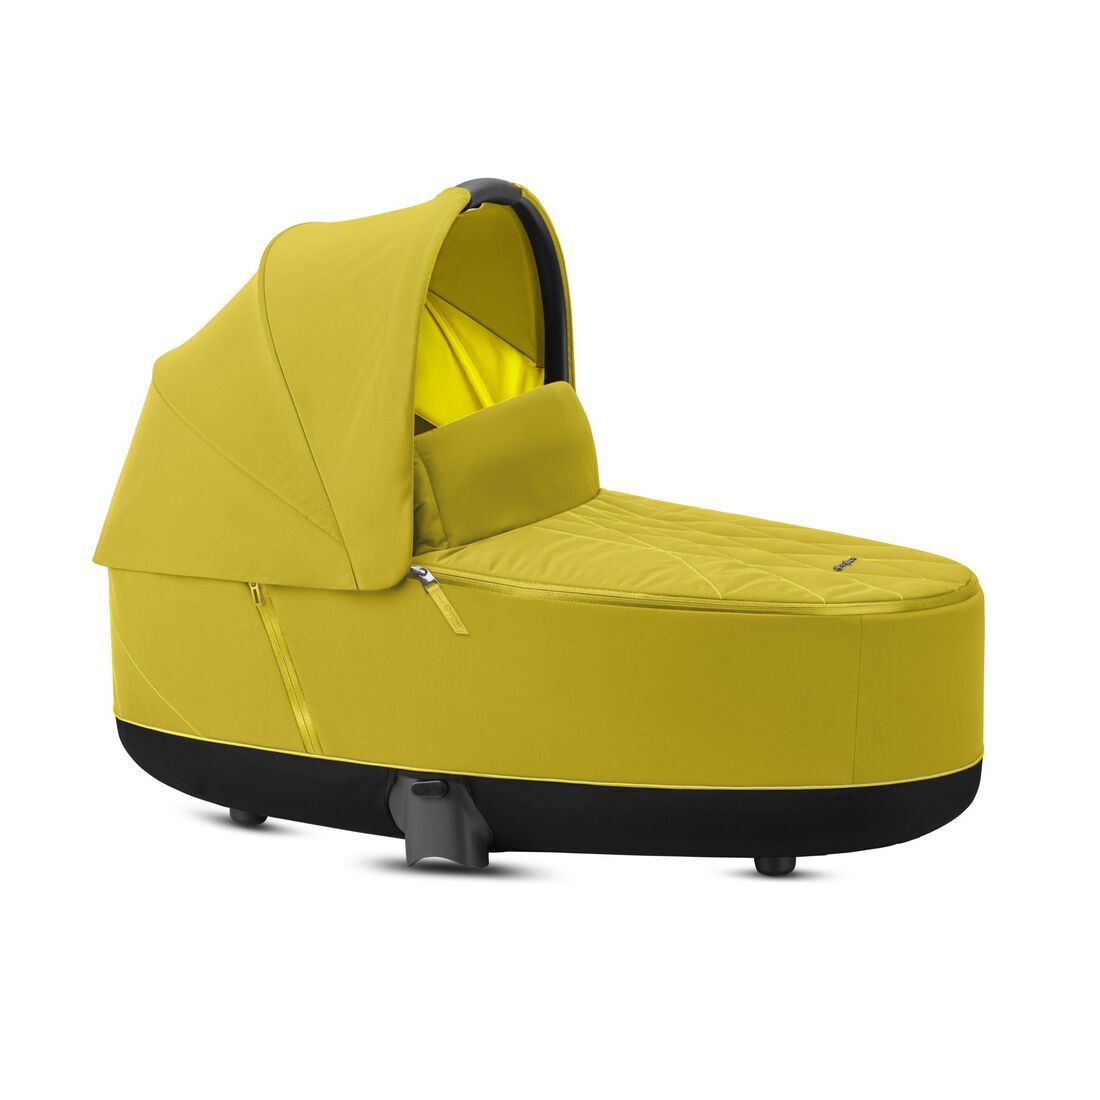 CYBEX Priam Lux Carry Cot - Mustard Yellow in Mustard Yellow large Bild 1